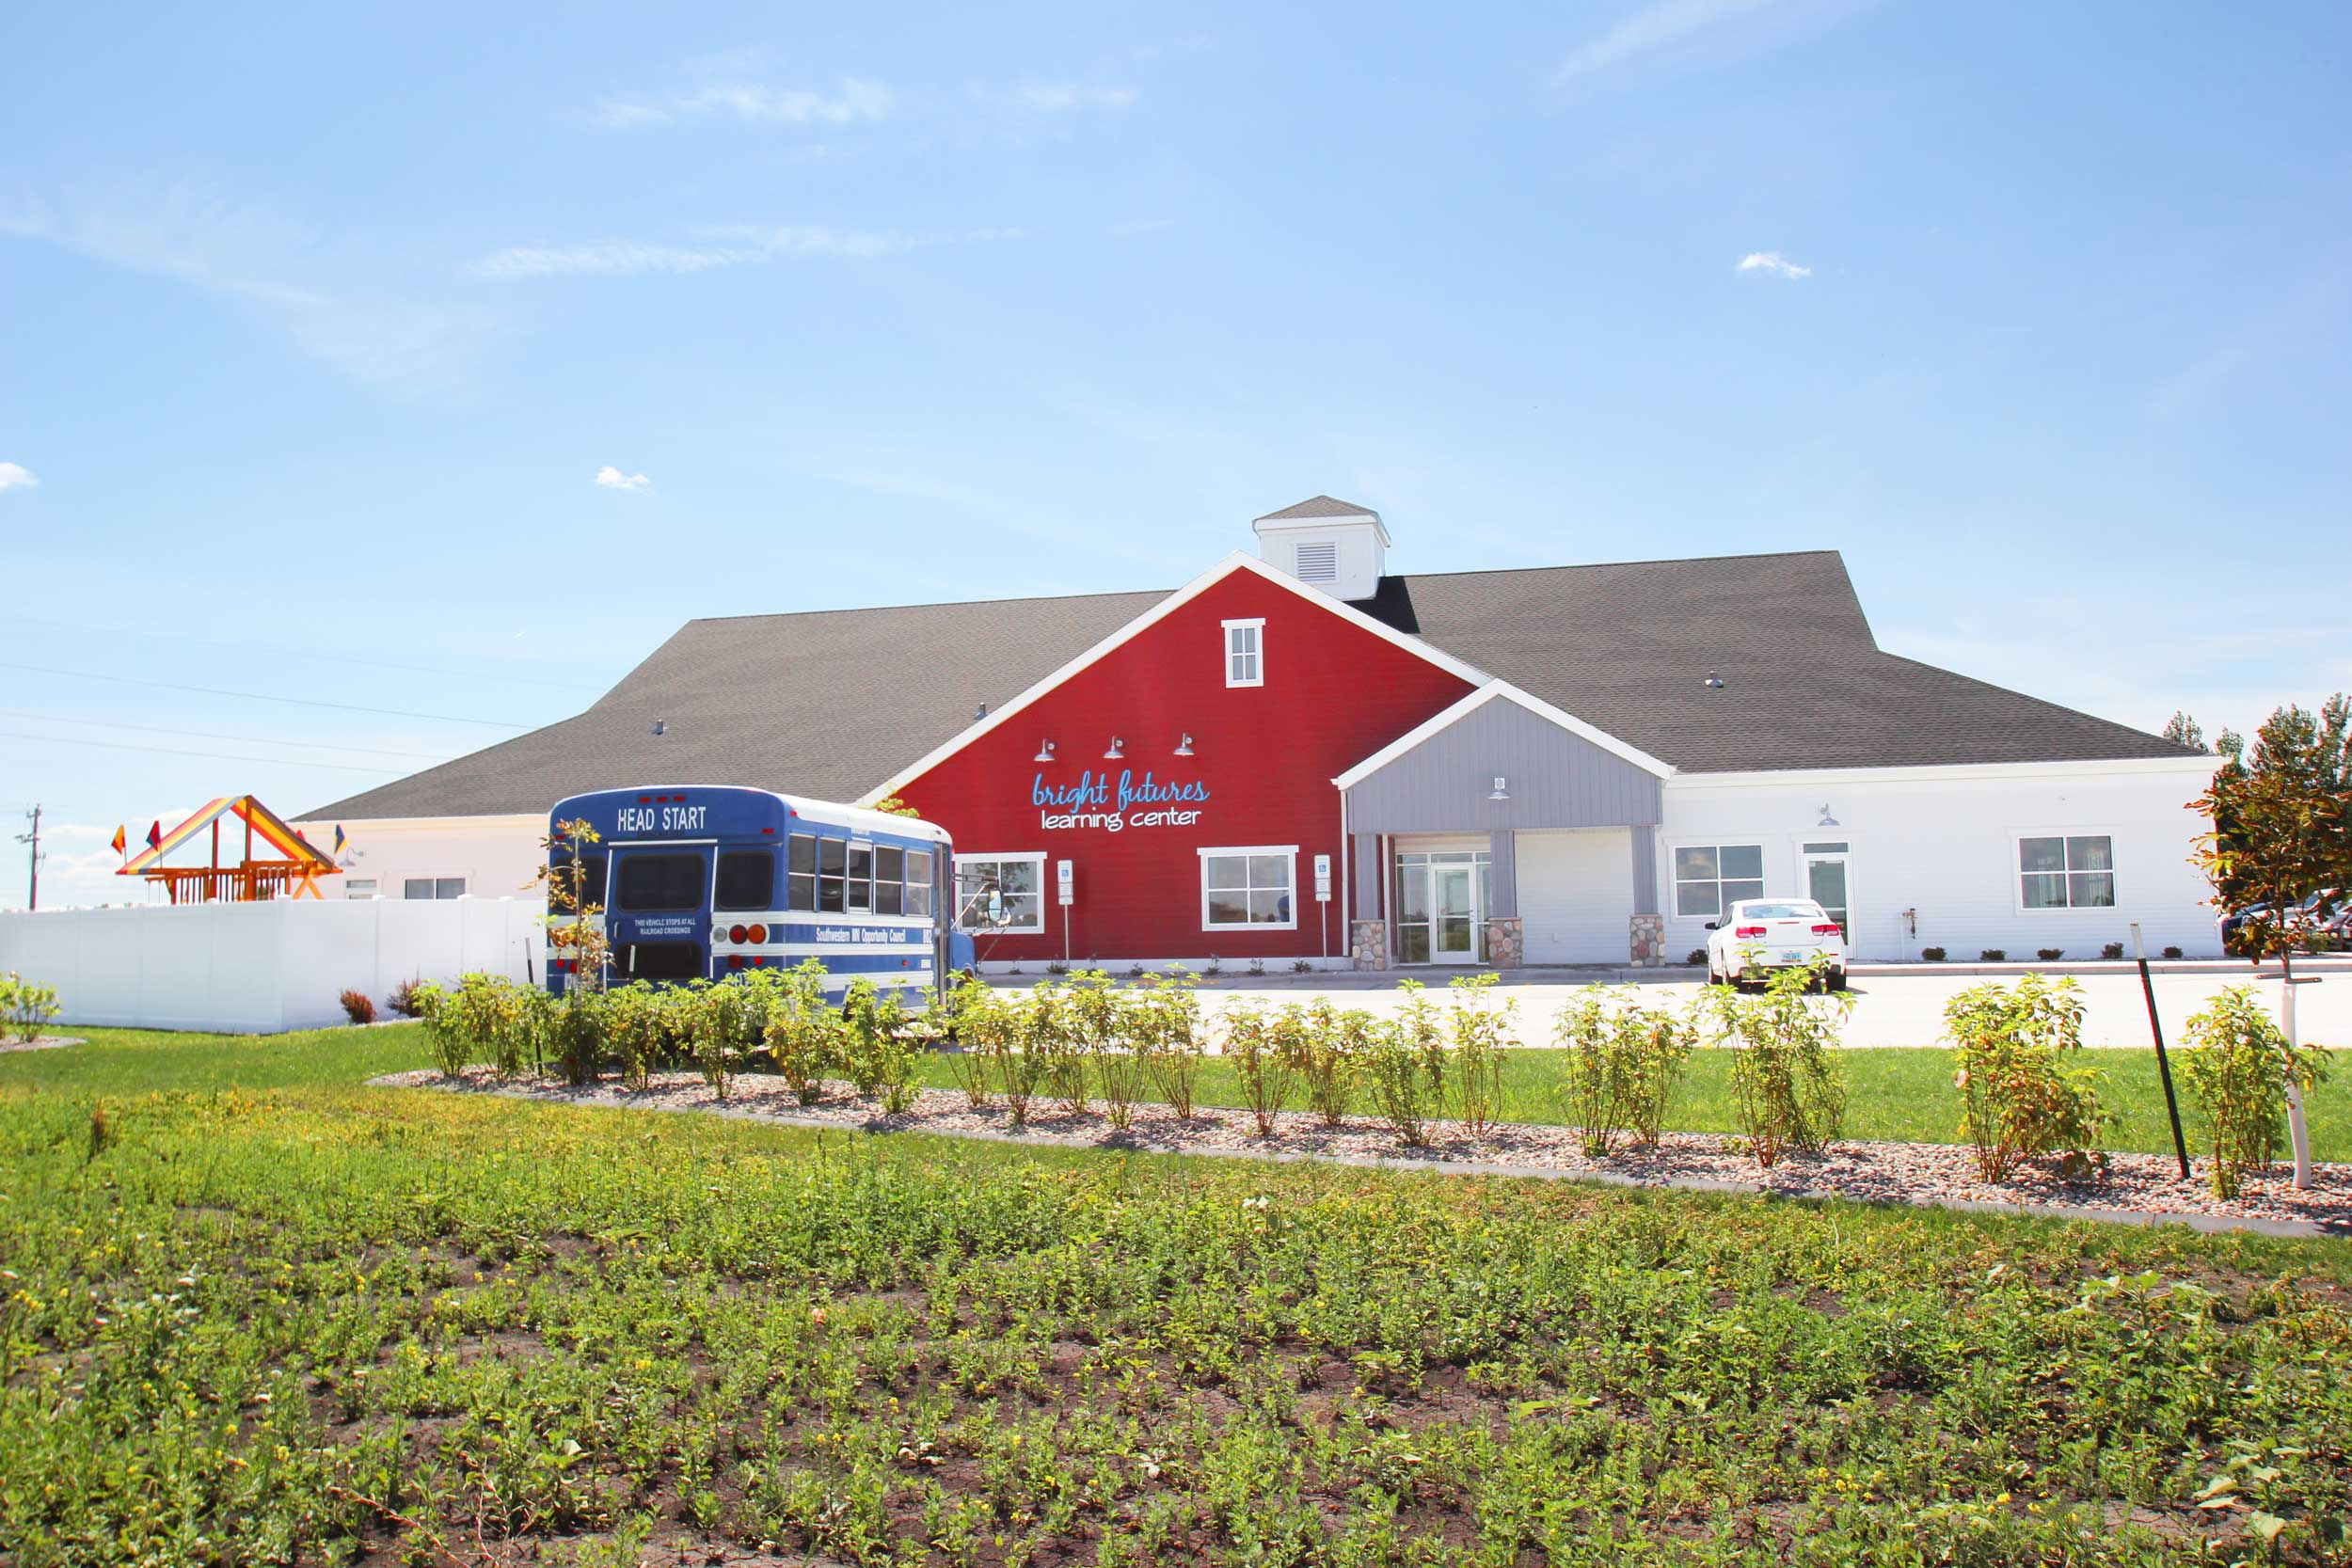 Childcare Center - Bright Futures Early Learning Center is located in the southwest corner of Rocking Horse Farm.